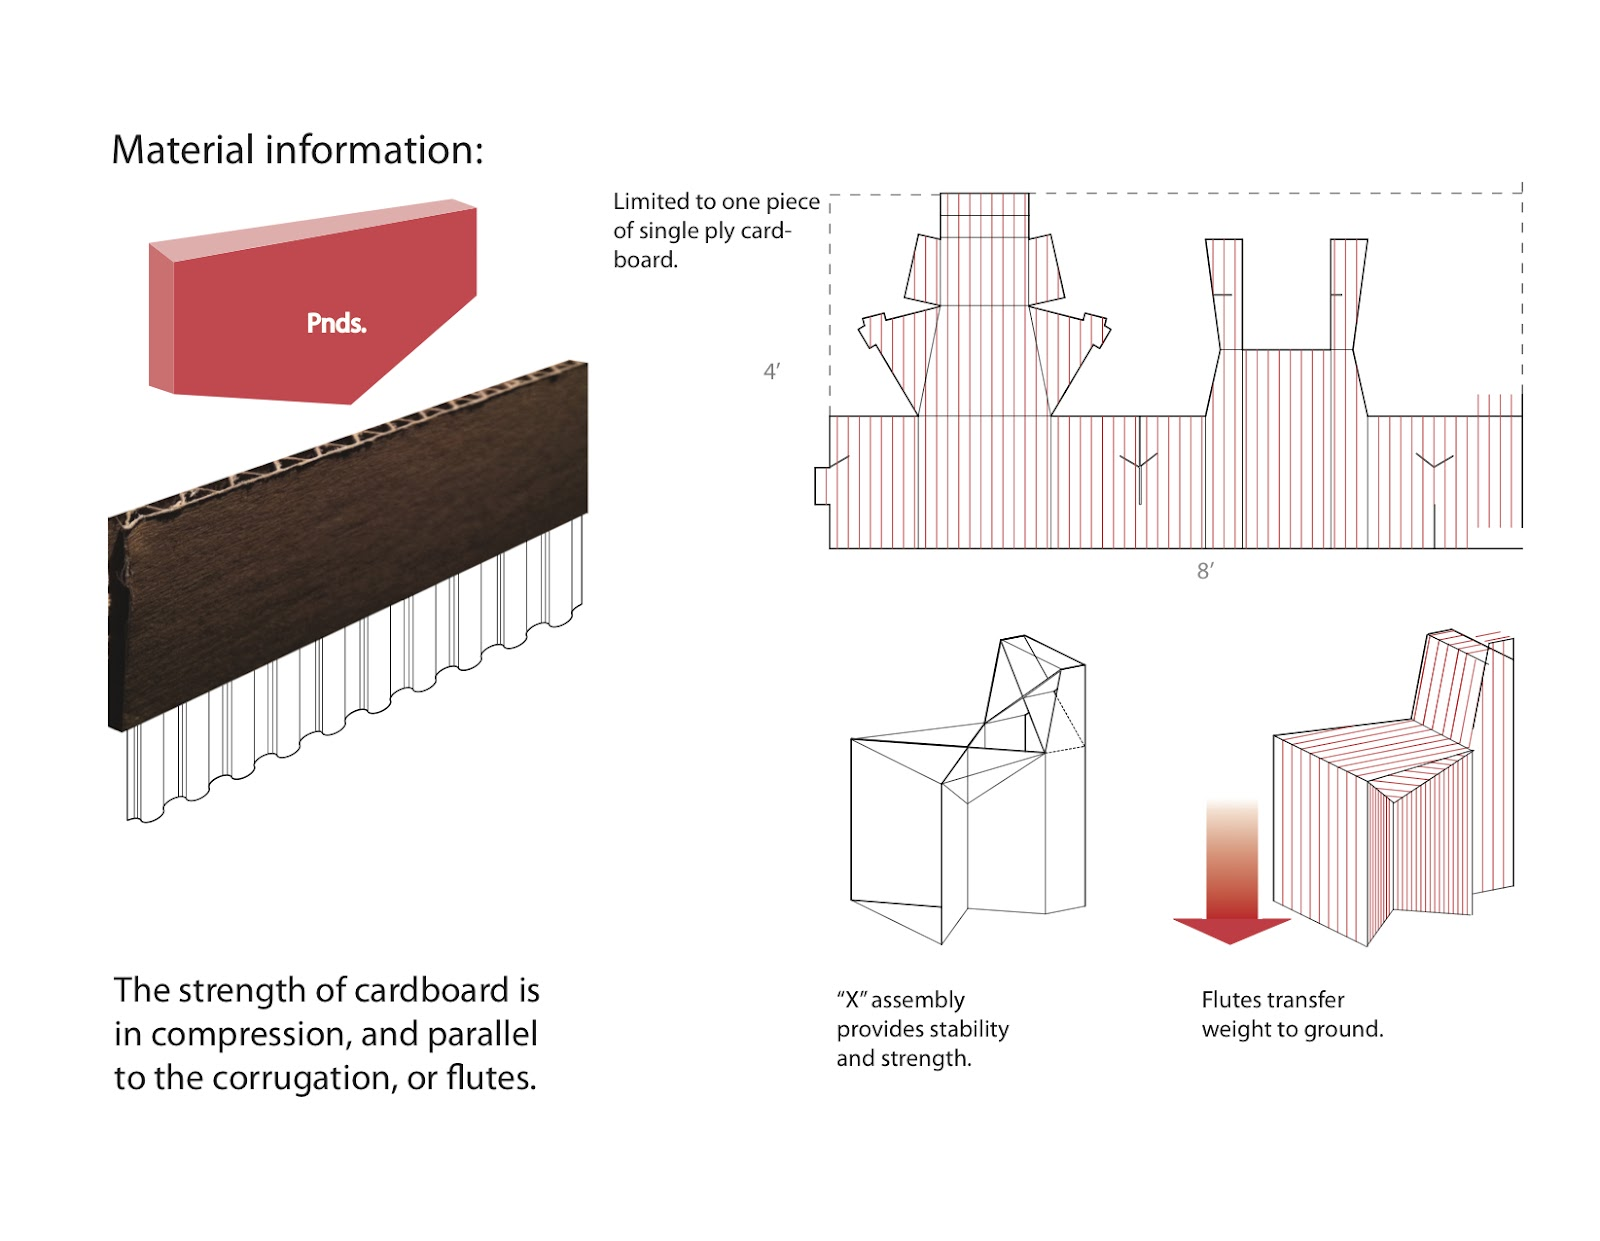 Cardboard Has Strength Only In Compression Not Tension Also The Application Of Must Be Done Parallel To Corrugations